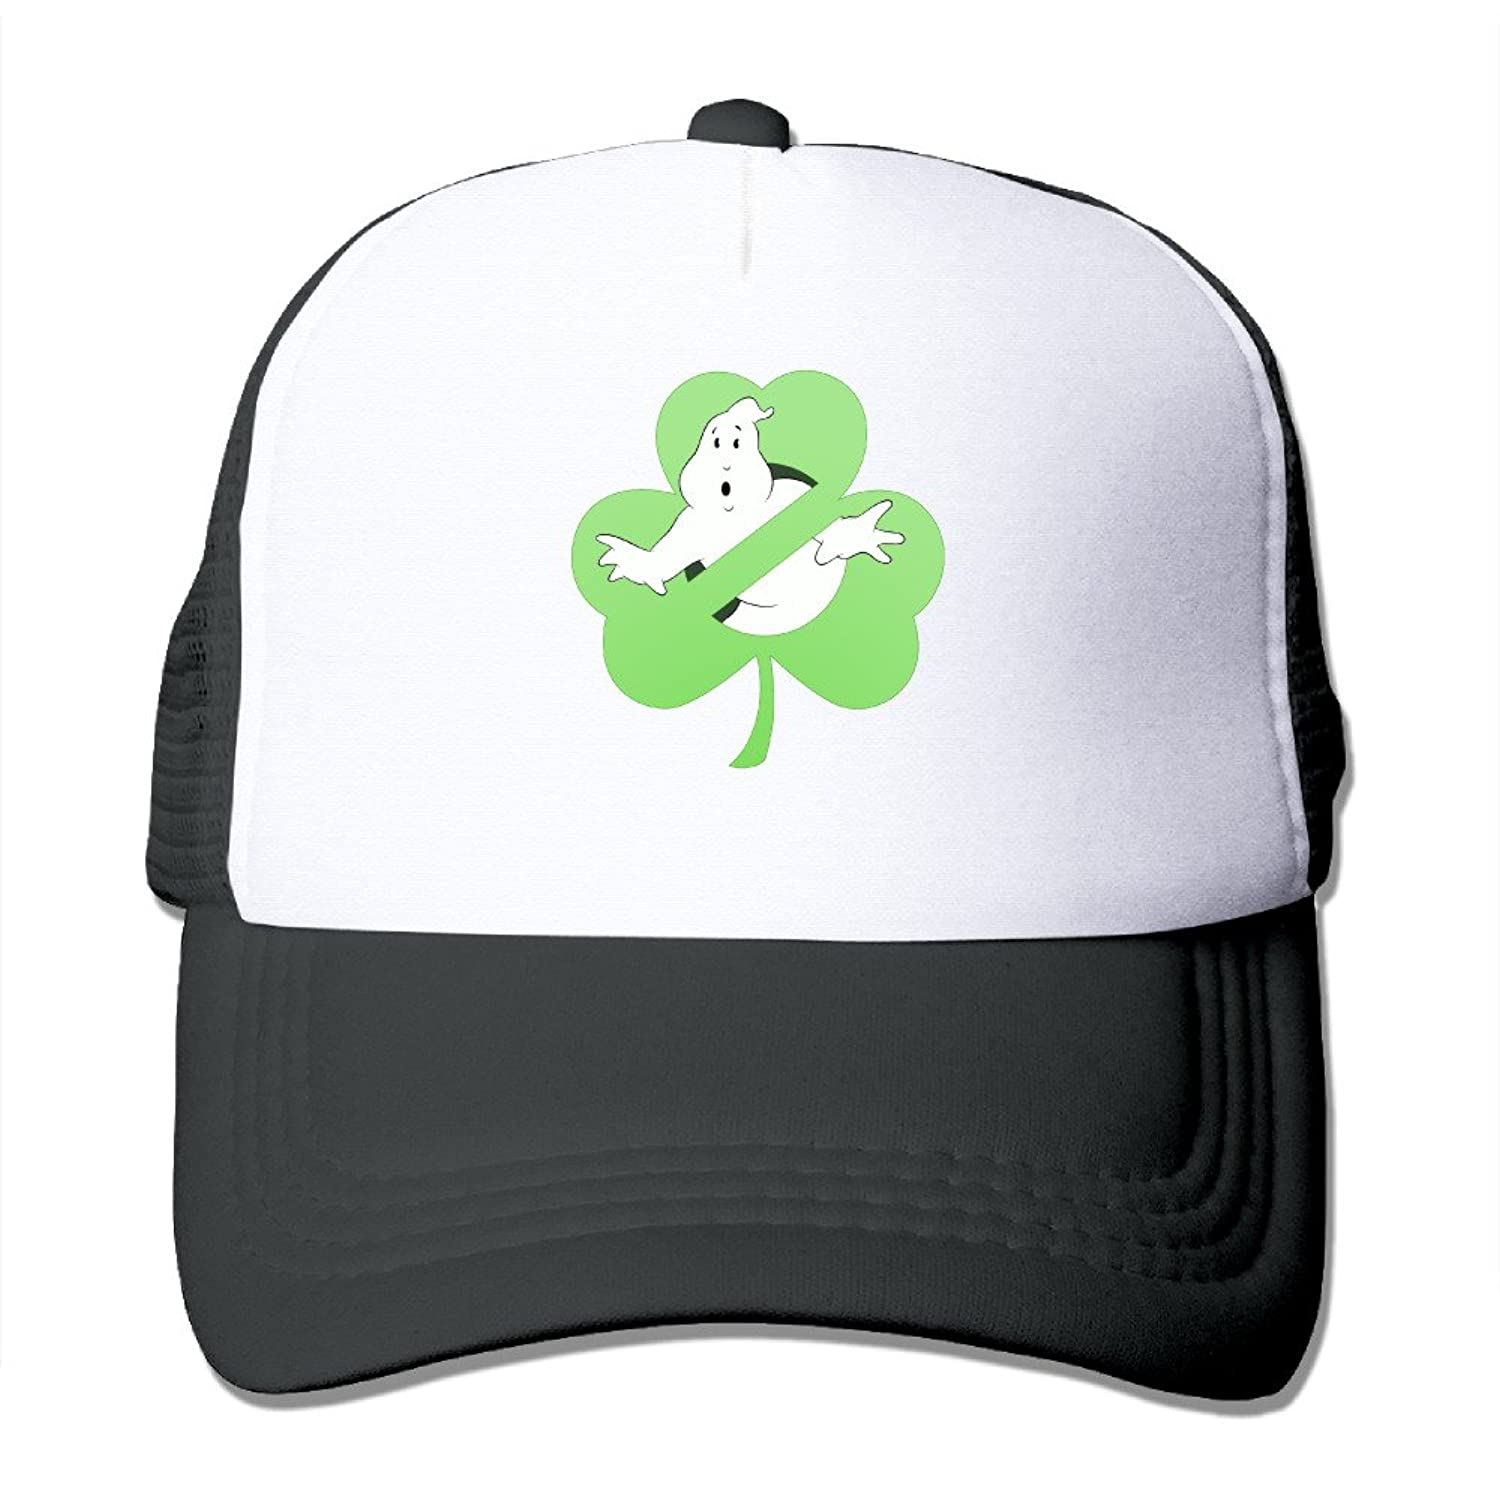 Cool Ghostbusters Irish Division Adult Nylon Adjustable Mesh Hat Mesh Hats Red One Size Fits Most